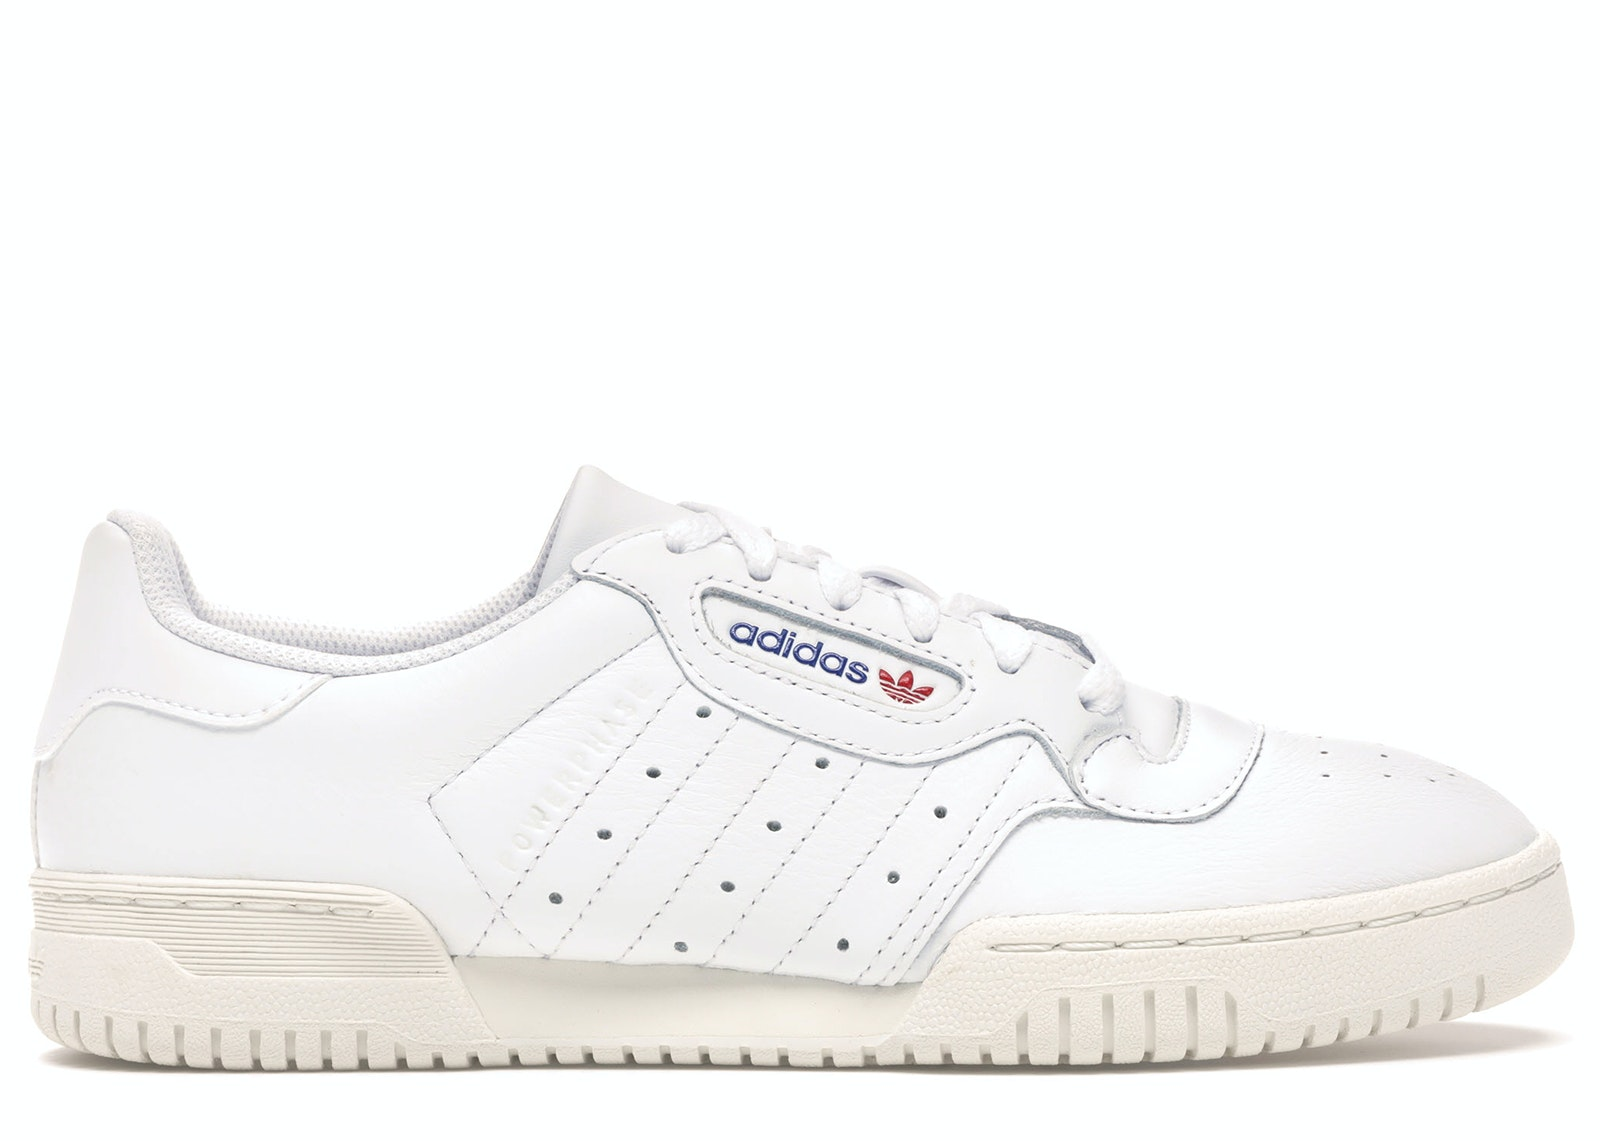 adidas Powerphase Cloud White Off White